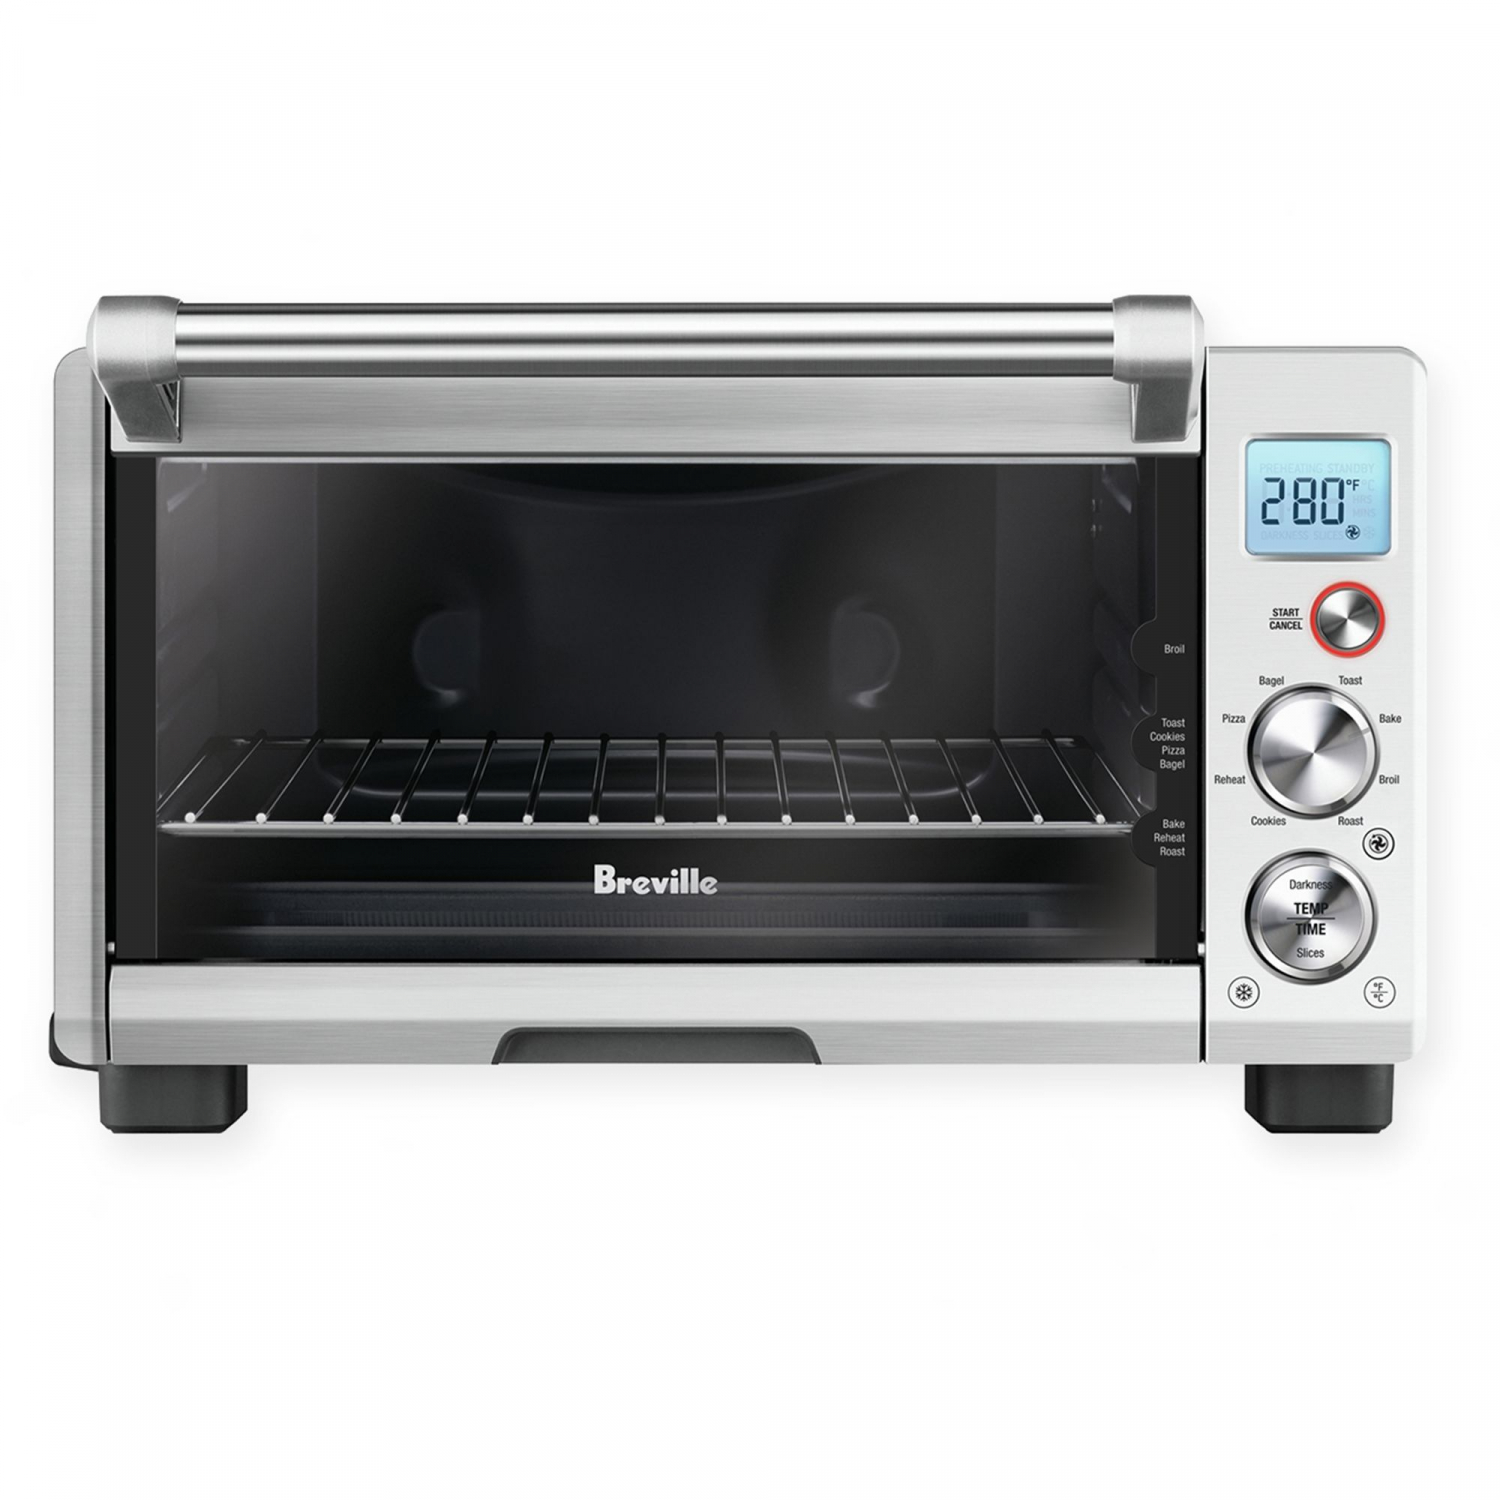 Breville Compact Convection Smart Toaster Oven Ebay